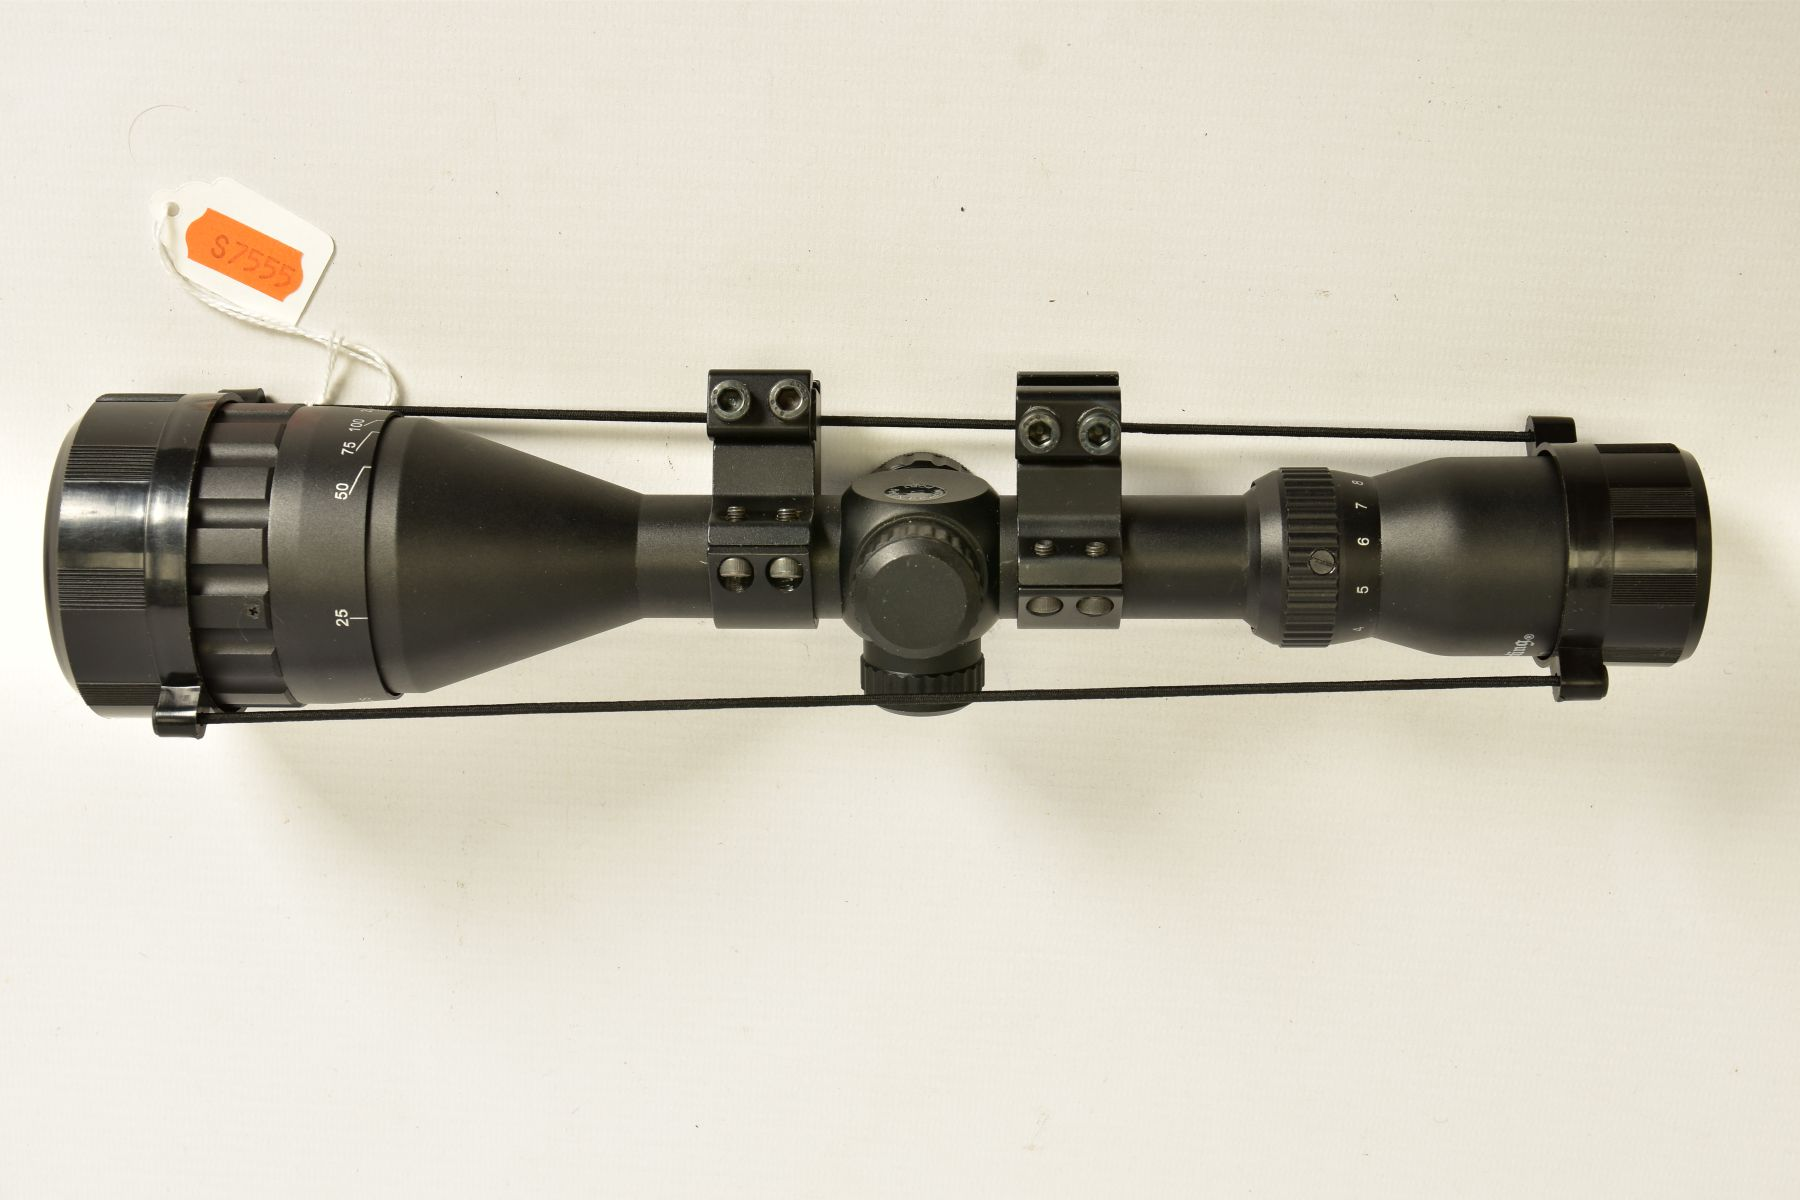 A NIKO STIRLING 3.9 X 50 RIFLE SCOPE and mounts, it appears to be in unused condition - Image 8 of 8